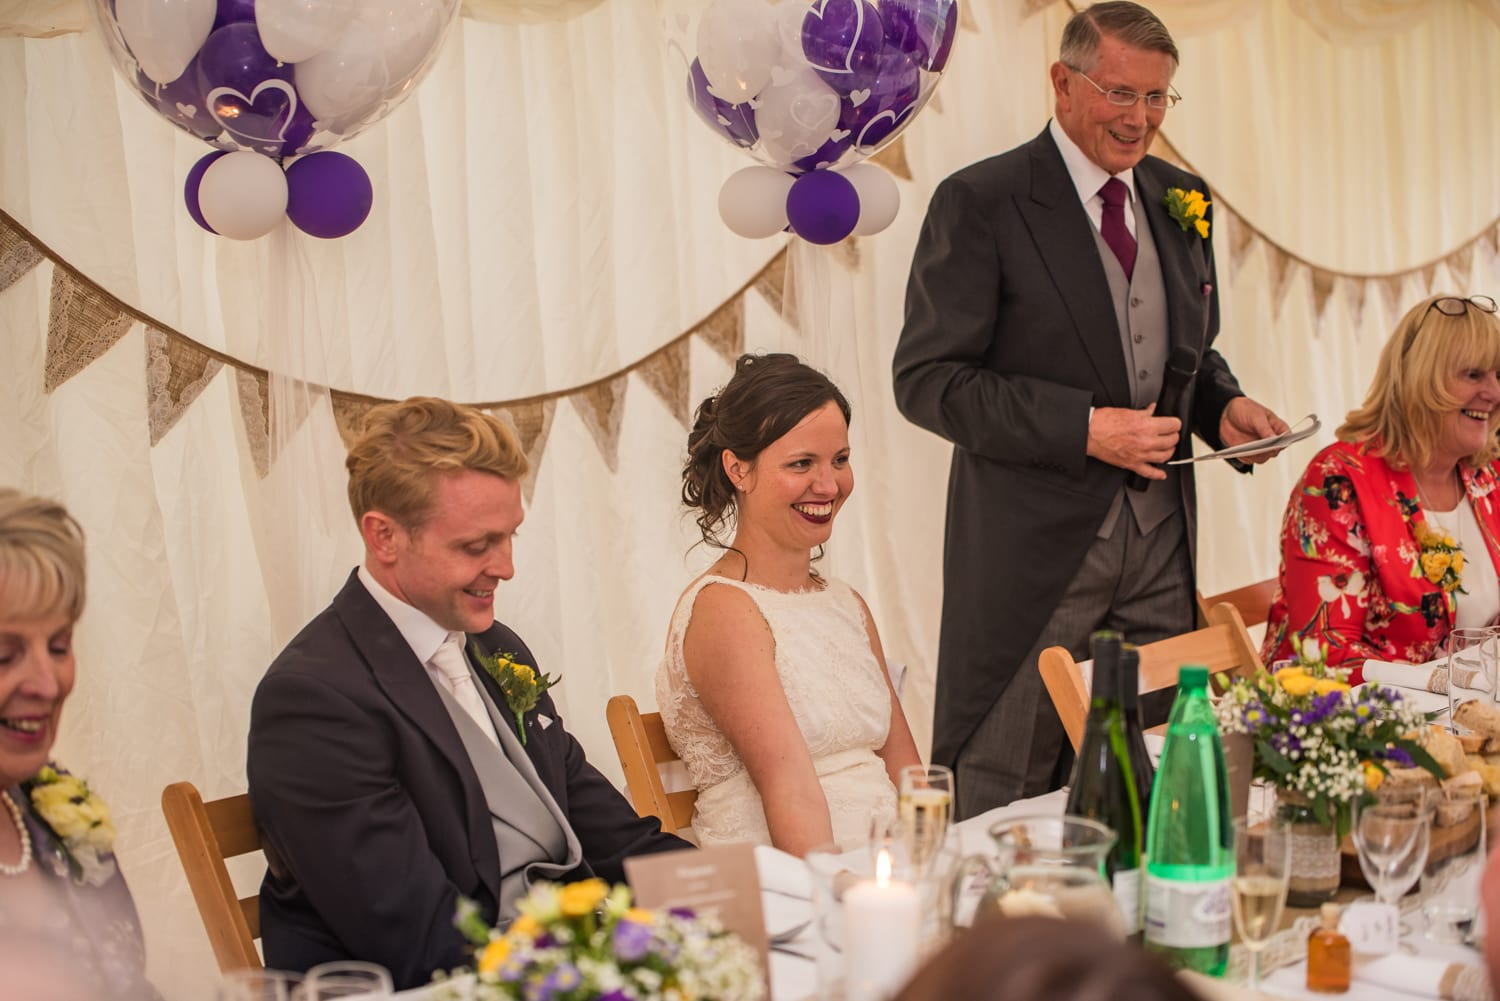 094-father-of-bride-speech-5_1.jpg